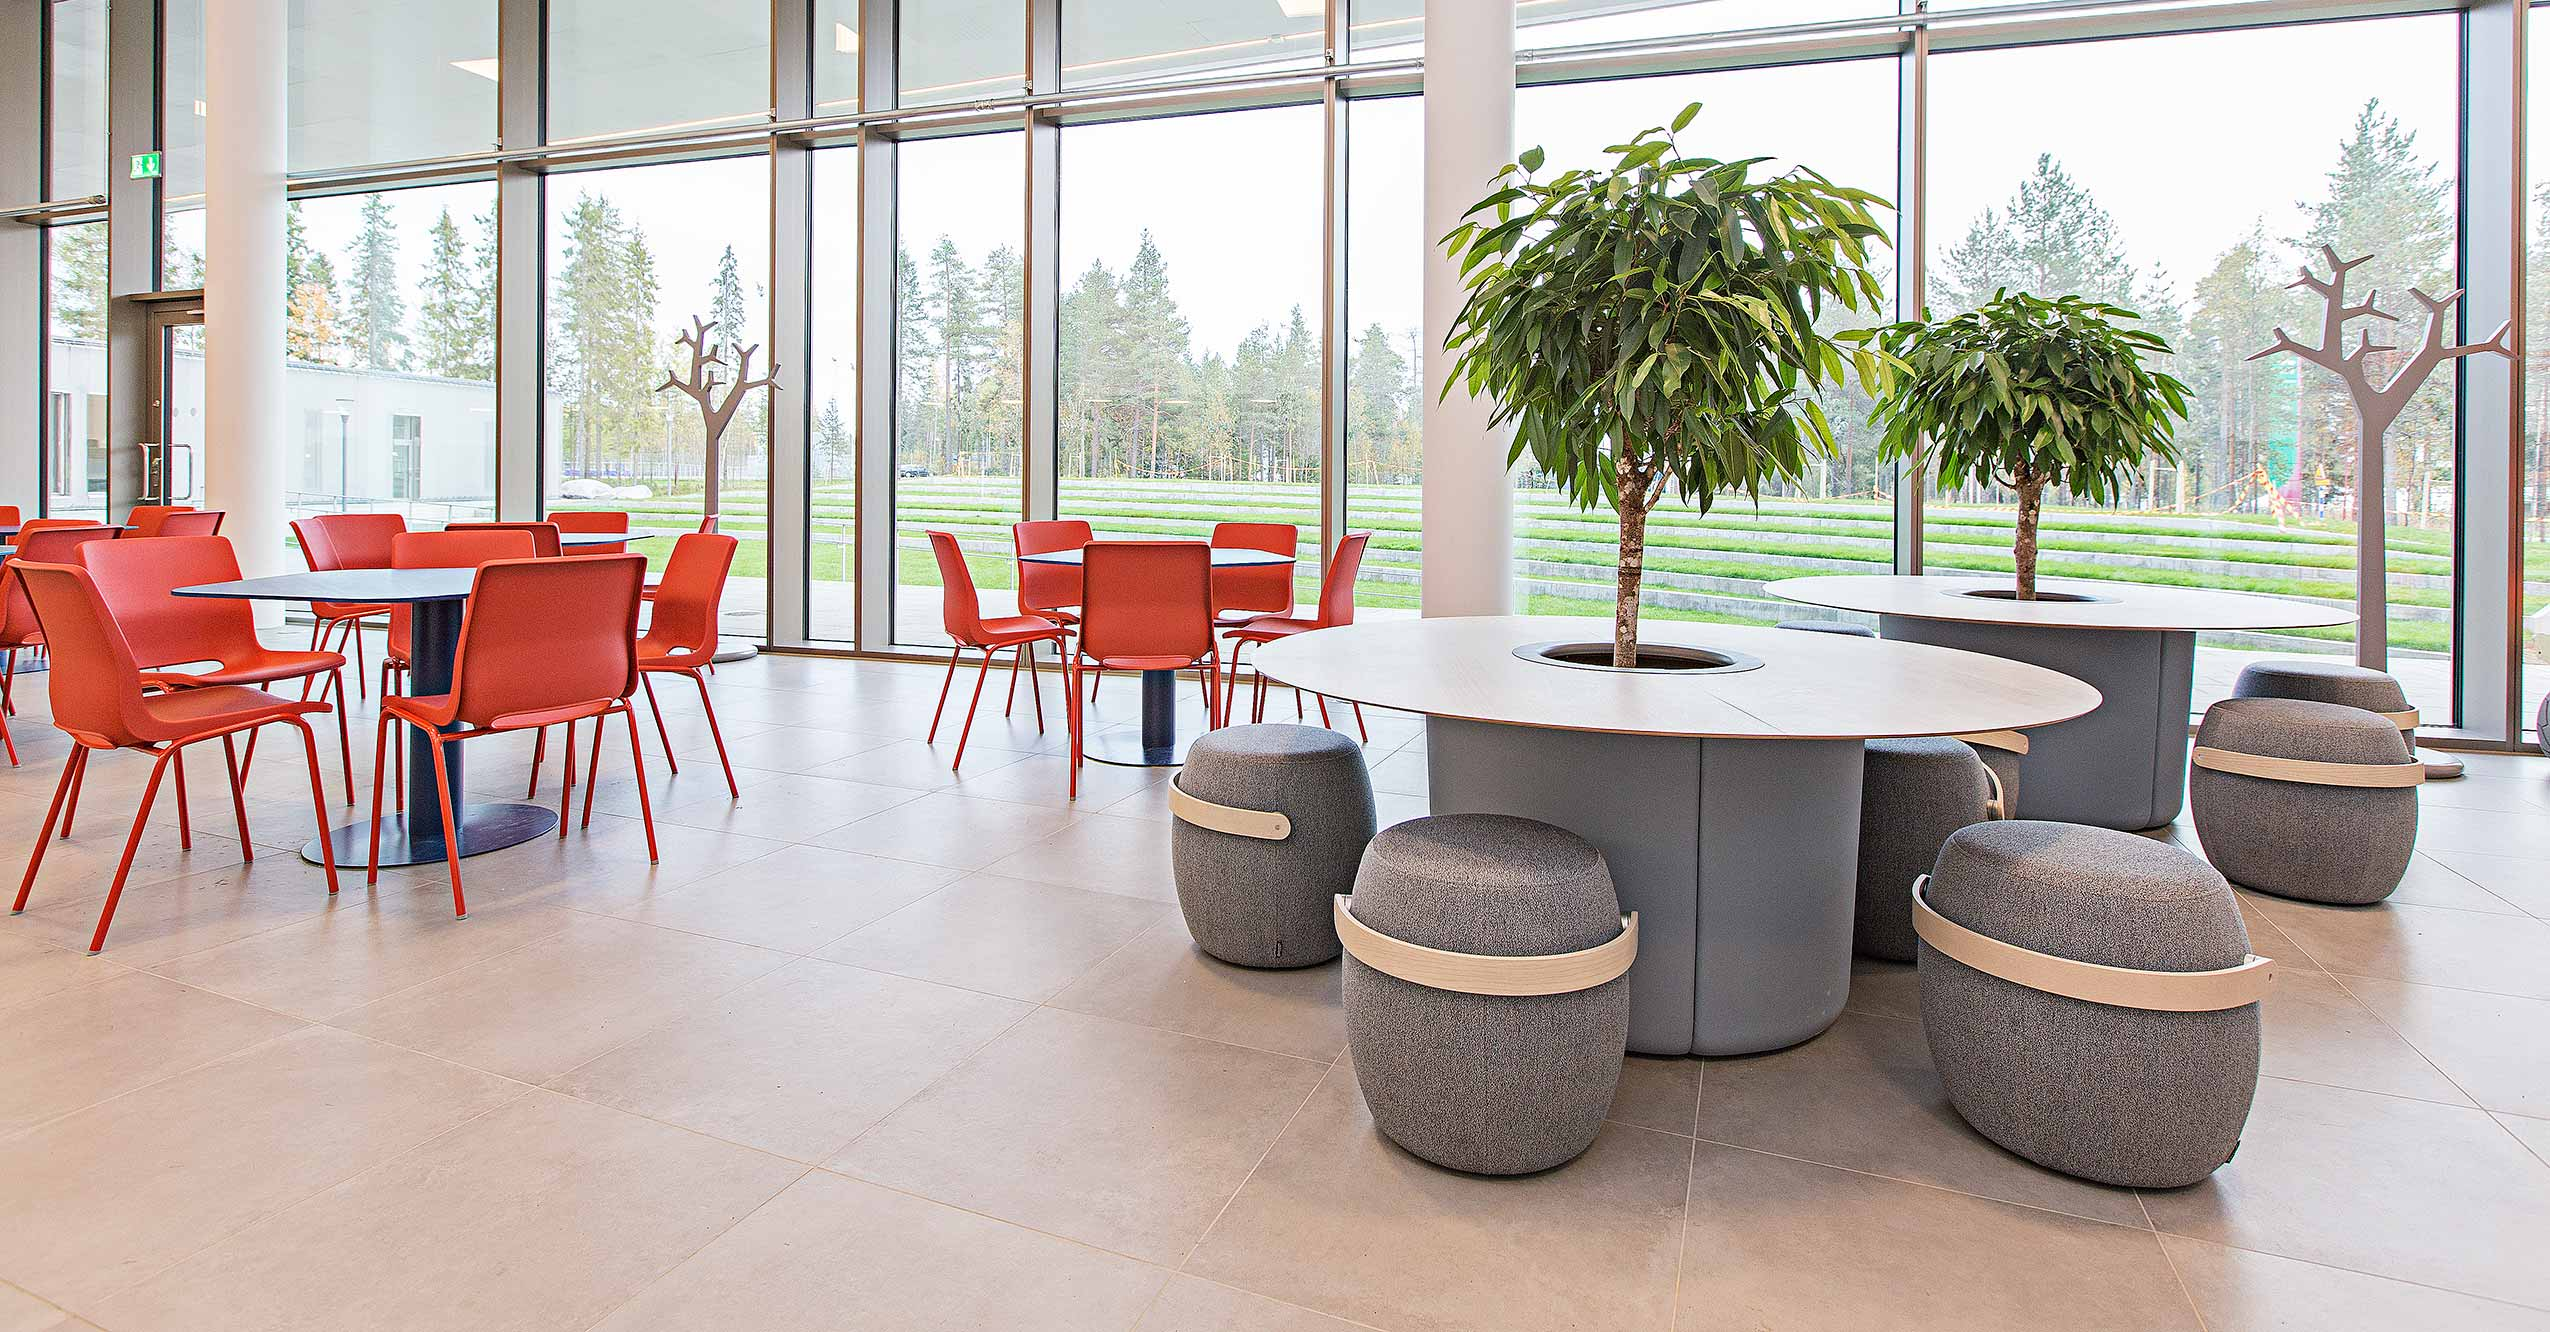 RBM Ana red canteen and cafeteria chairs with grey stools and round table with tree in high school